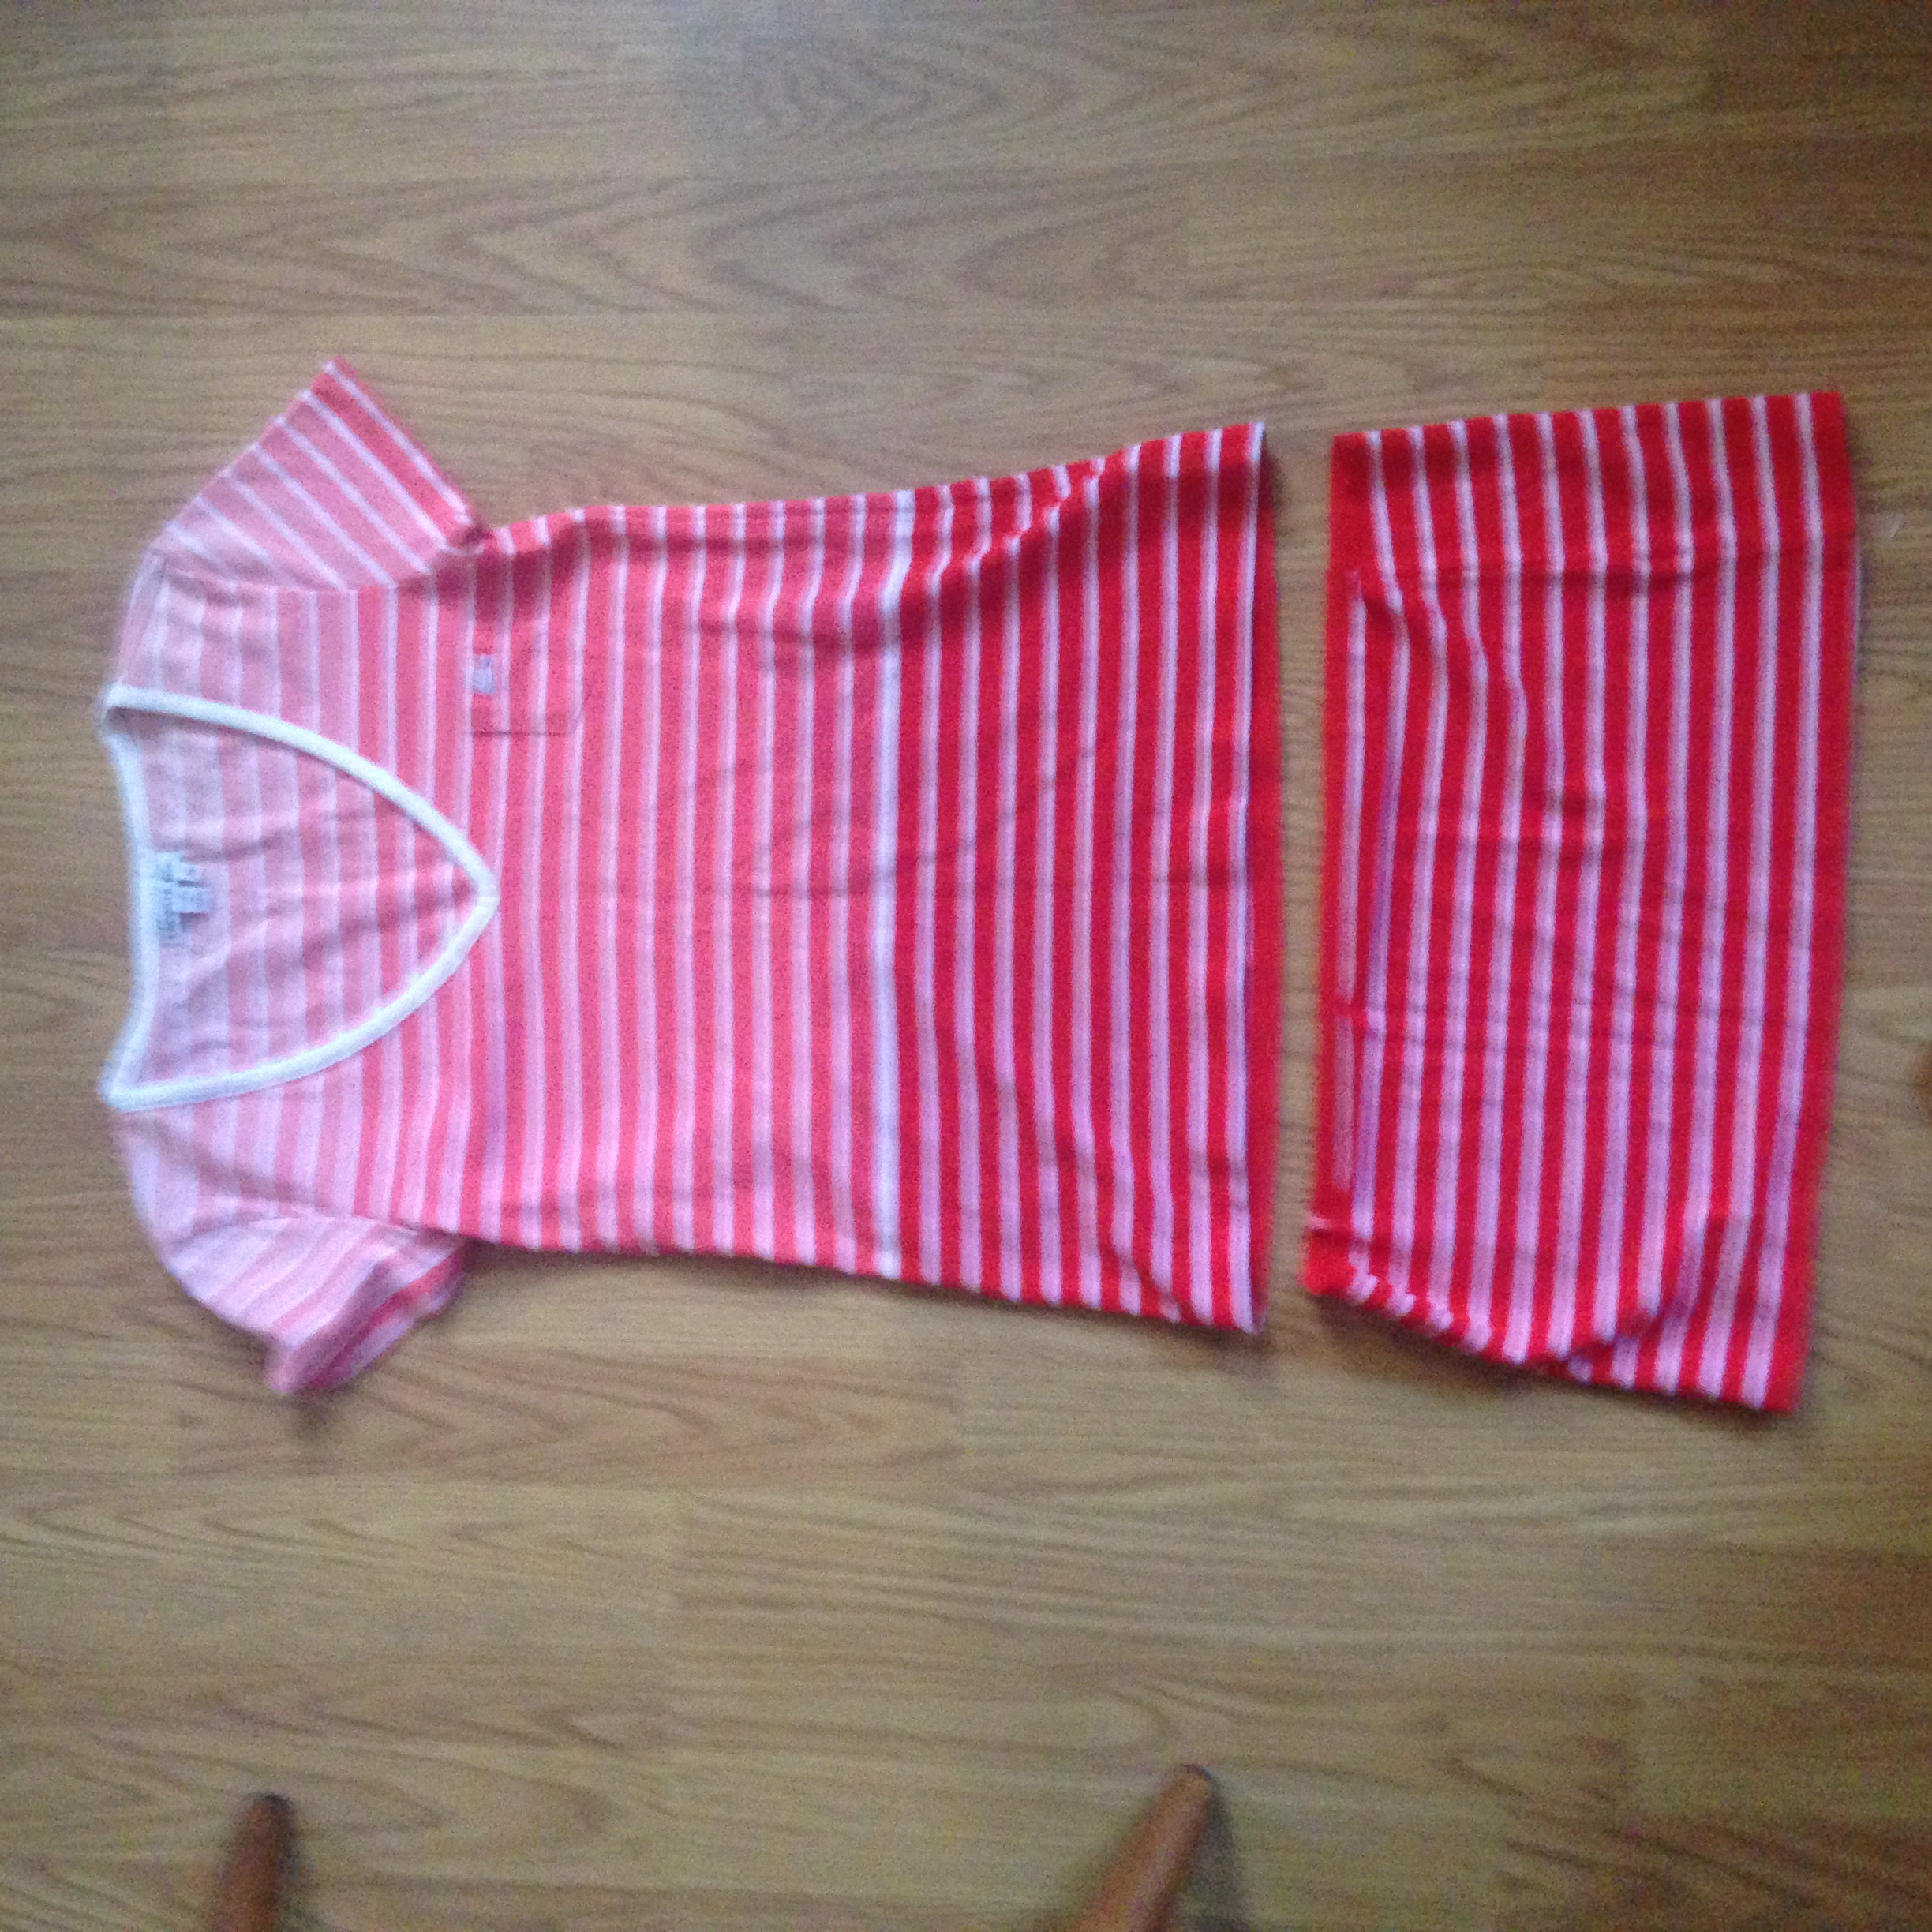 Striped tunic and a left over scrap of fabric. It's too pretty to be a rag... any ideas?